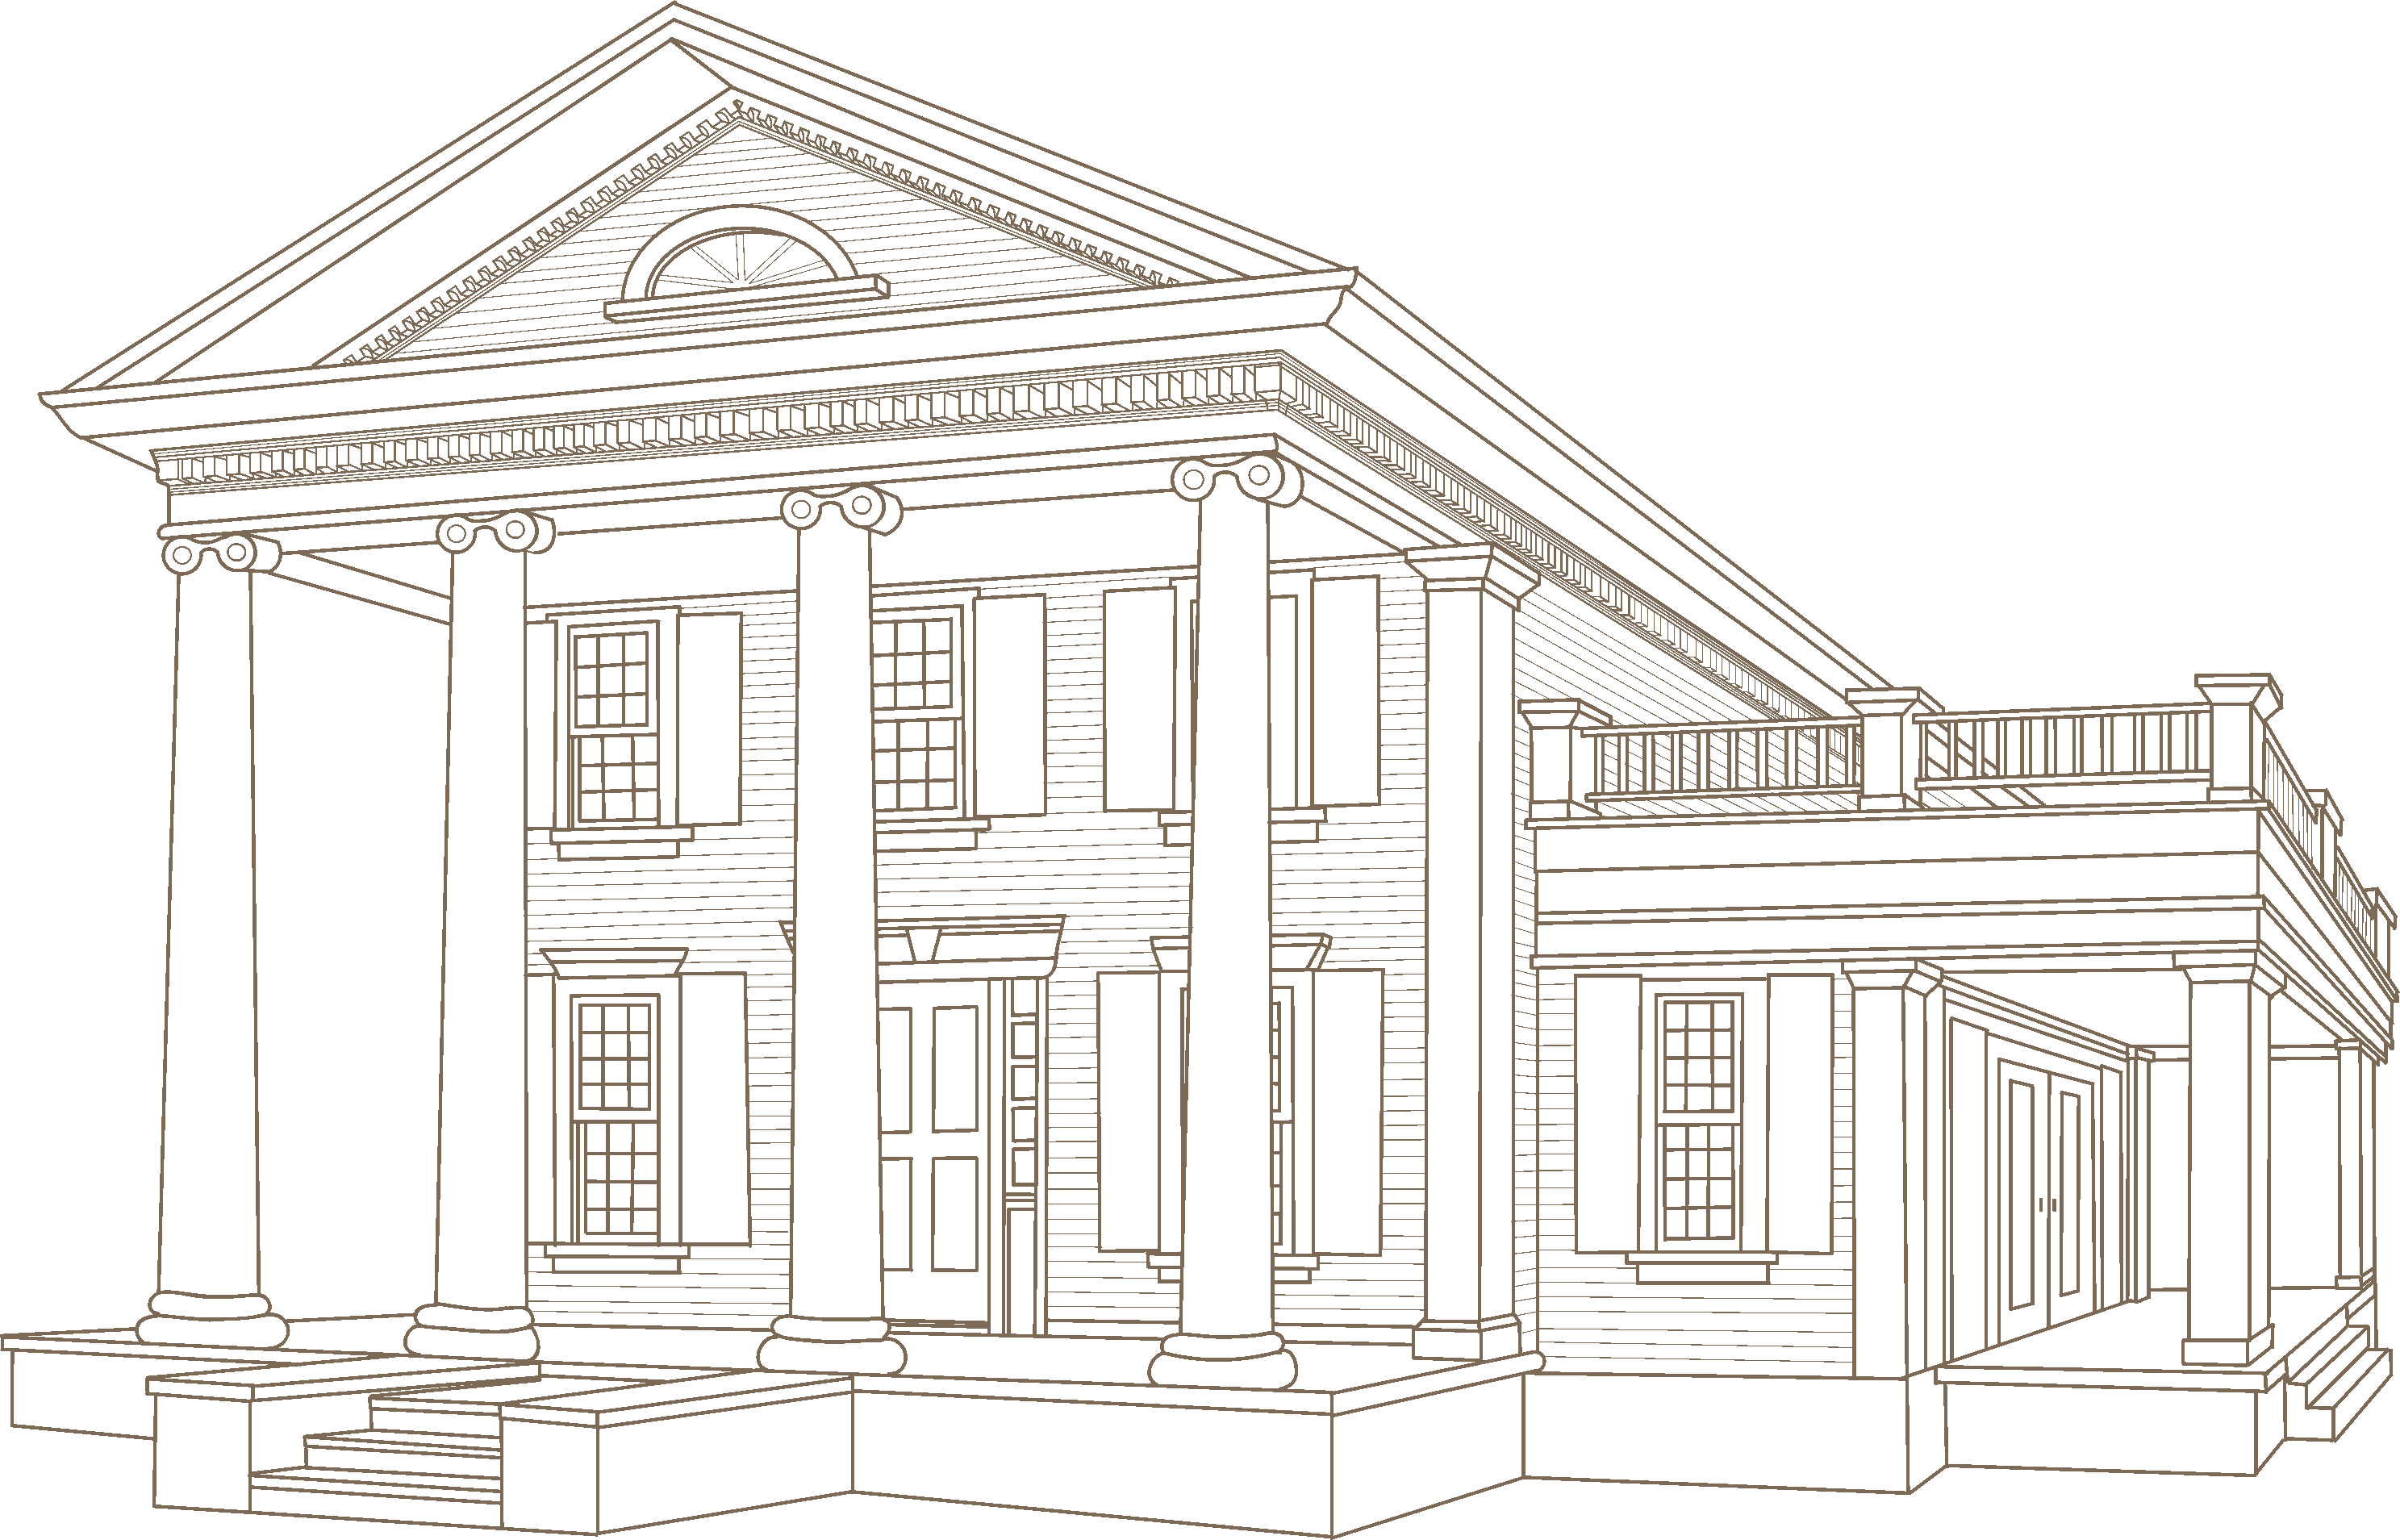 Greek Revival - Architectural Styles - Vinyl Siding - VSI